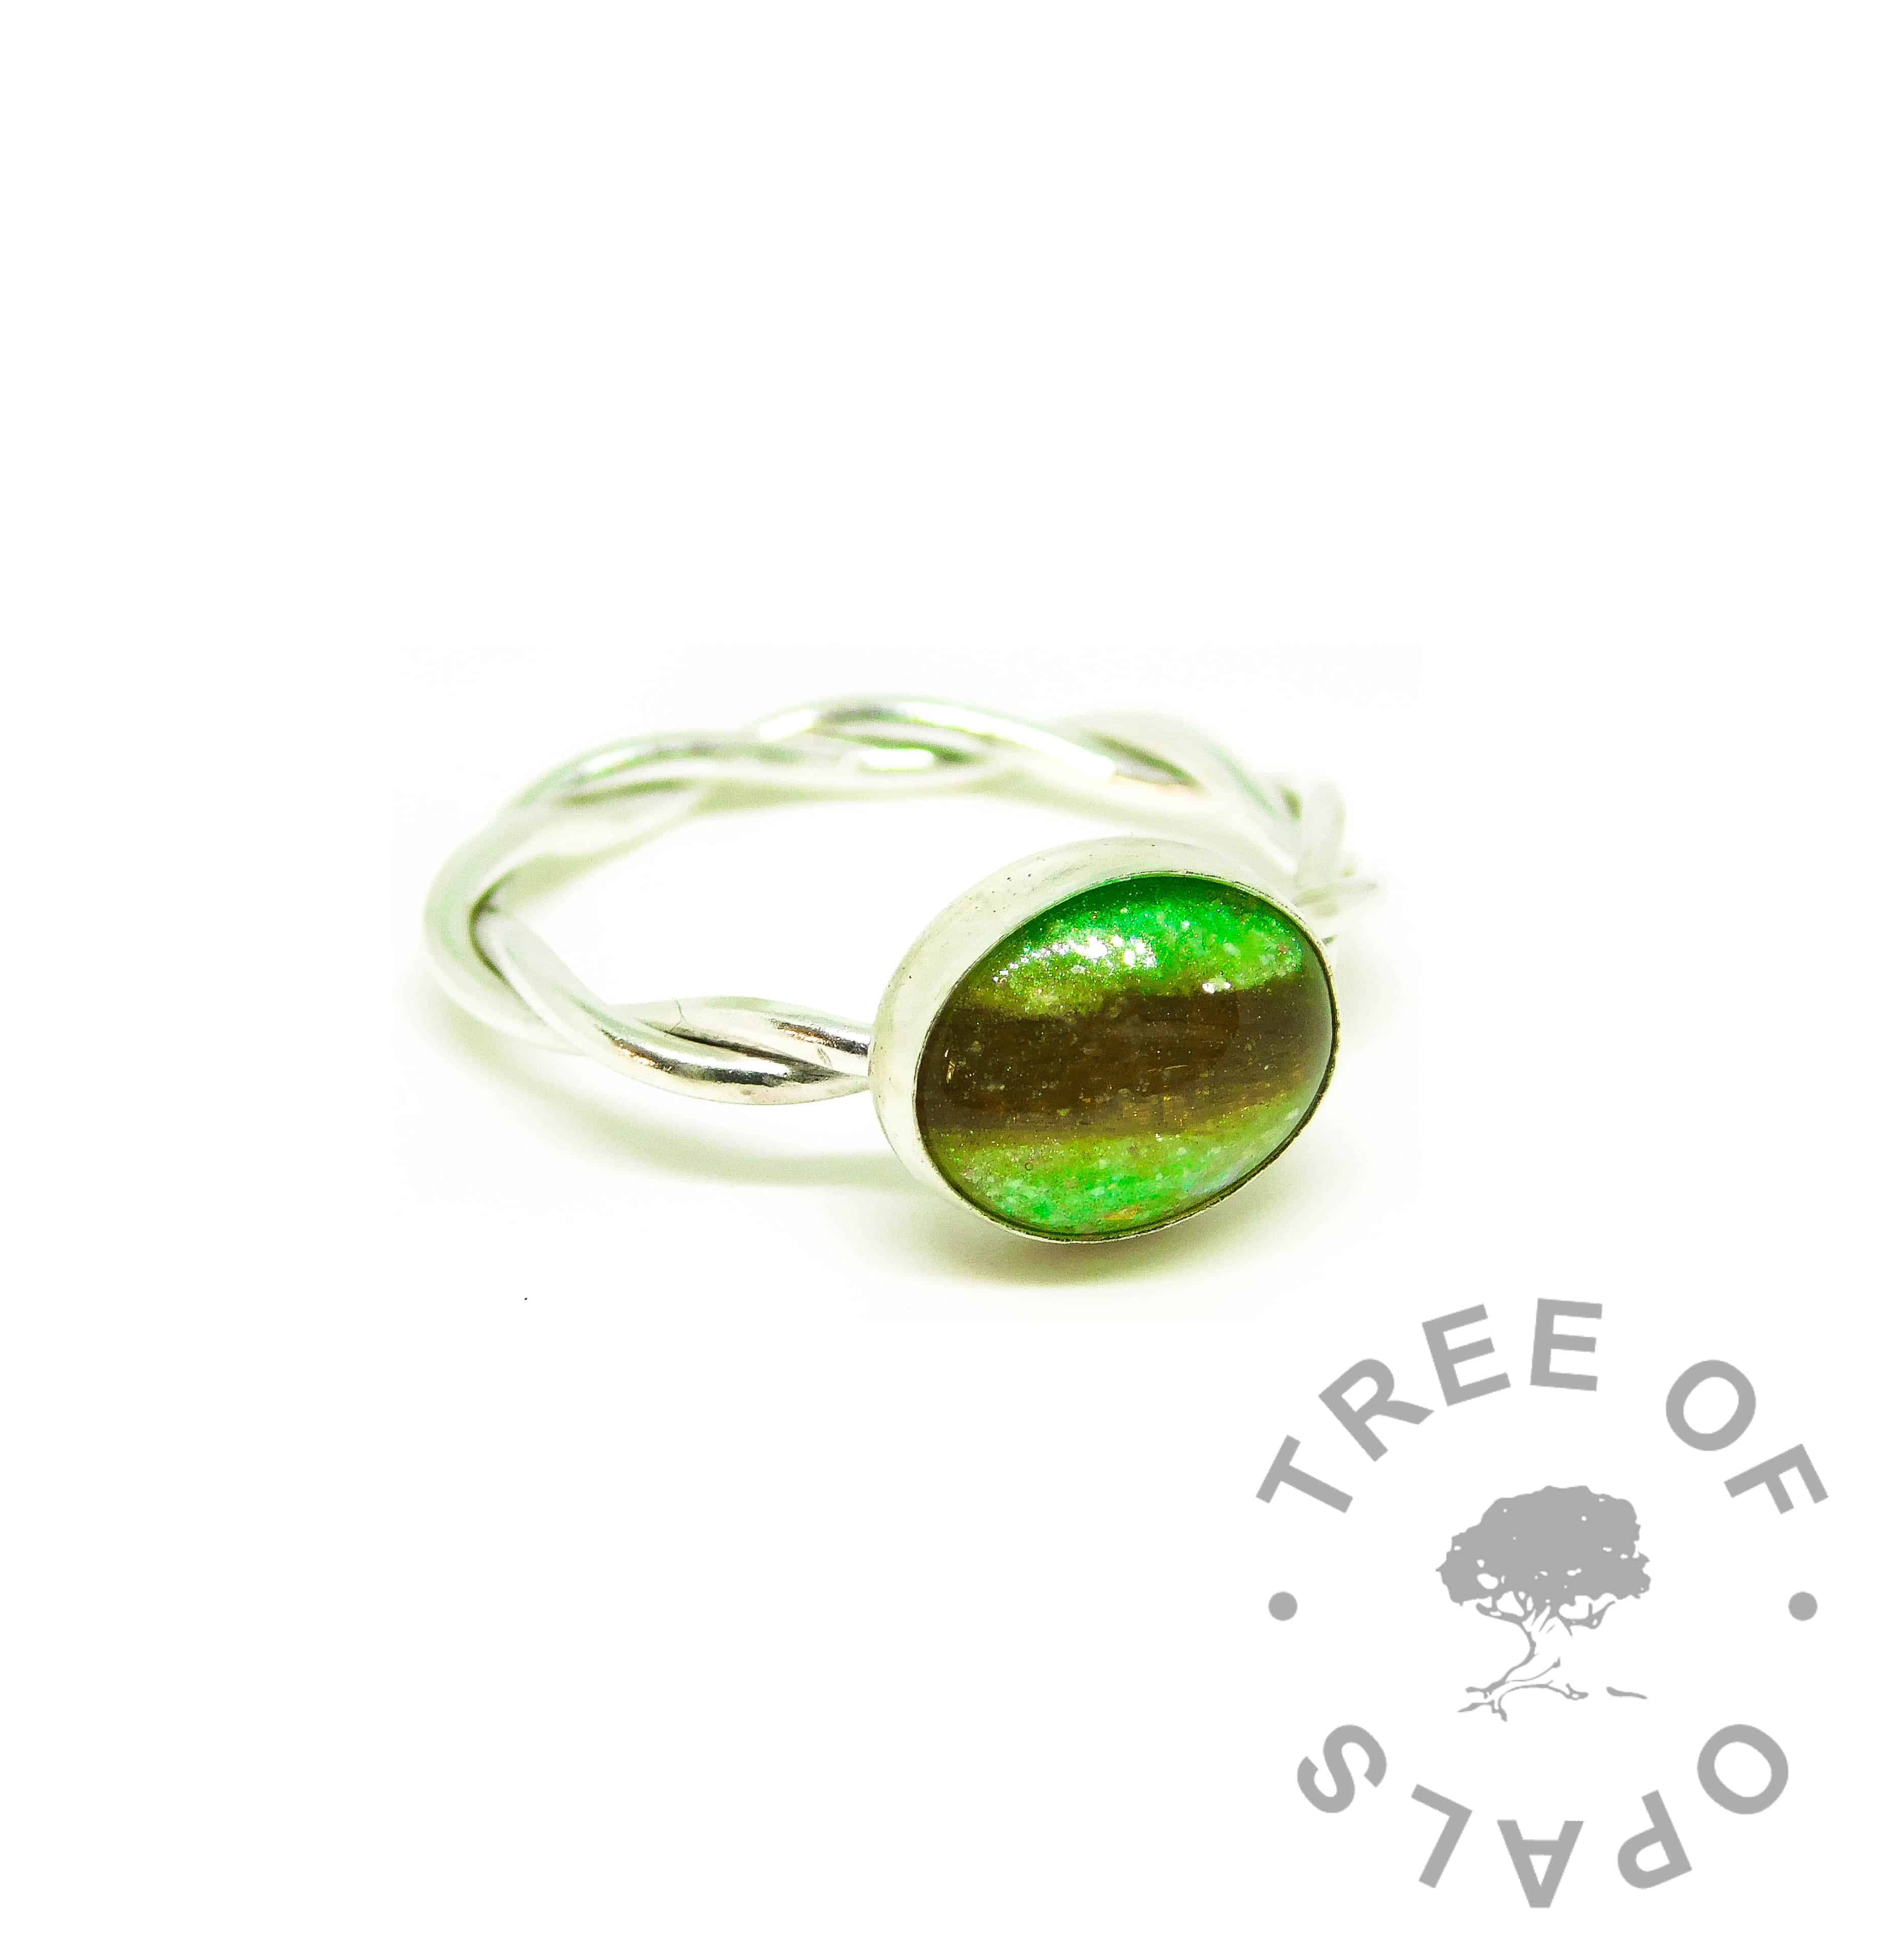 green hair ring, basilisk green resin sparkle mix, twisted wire Argentium silver band